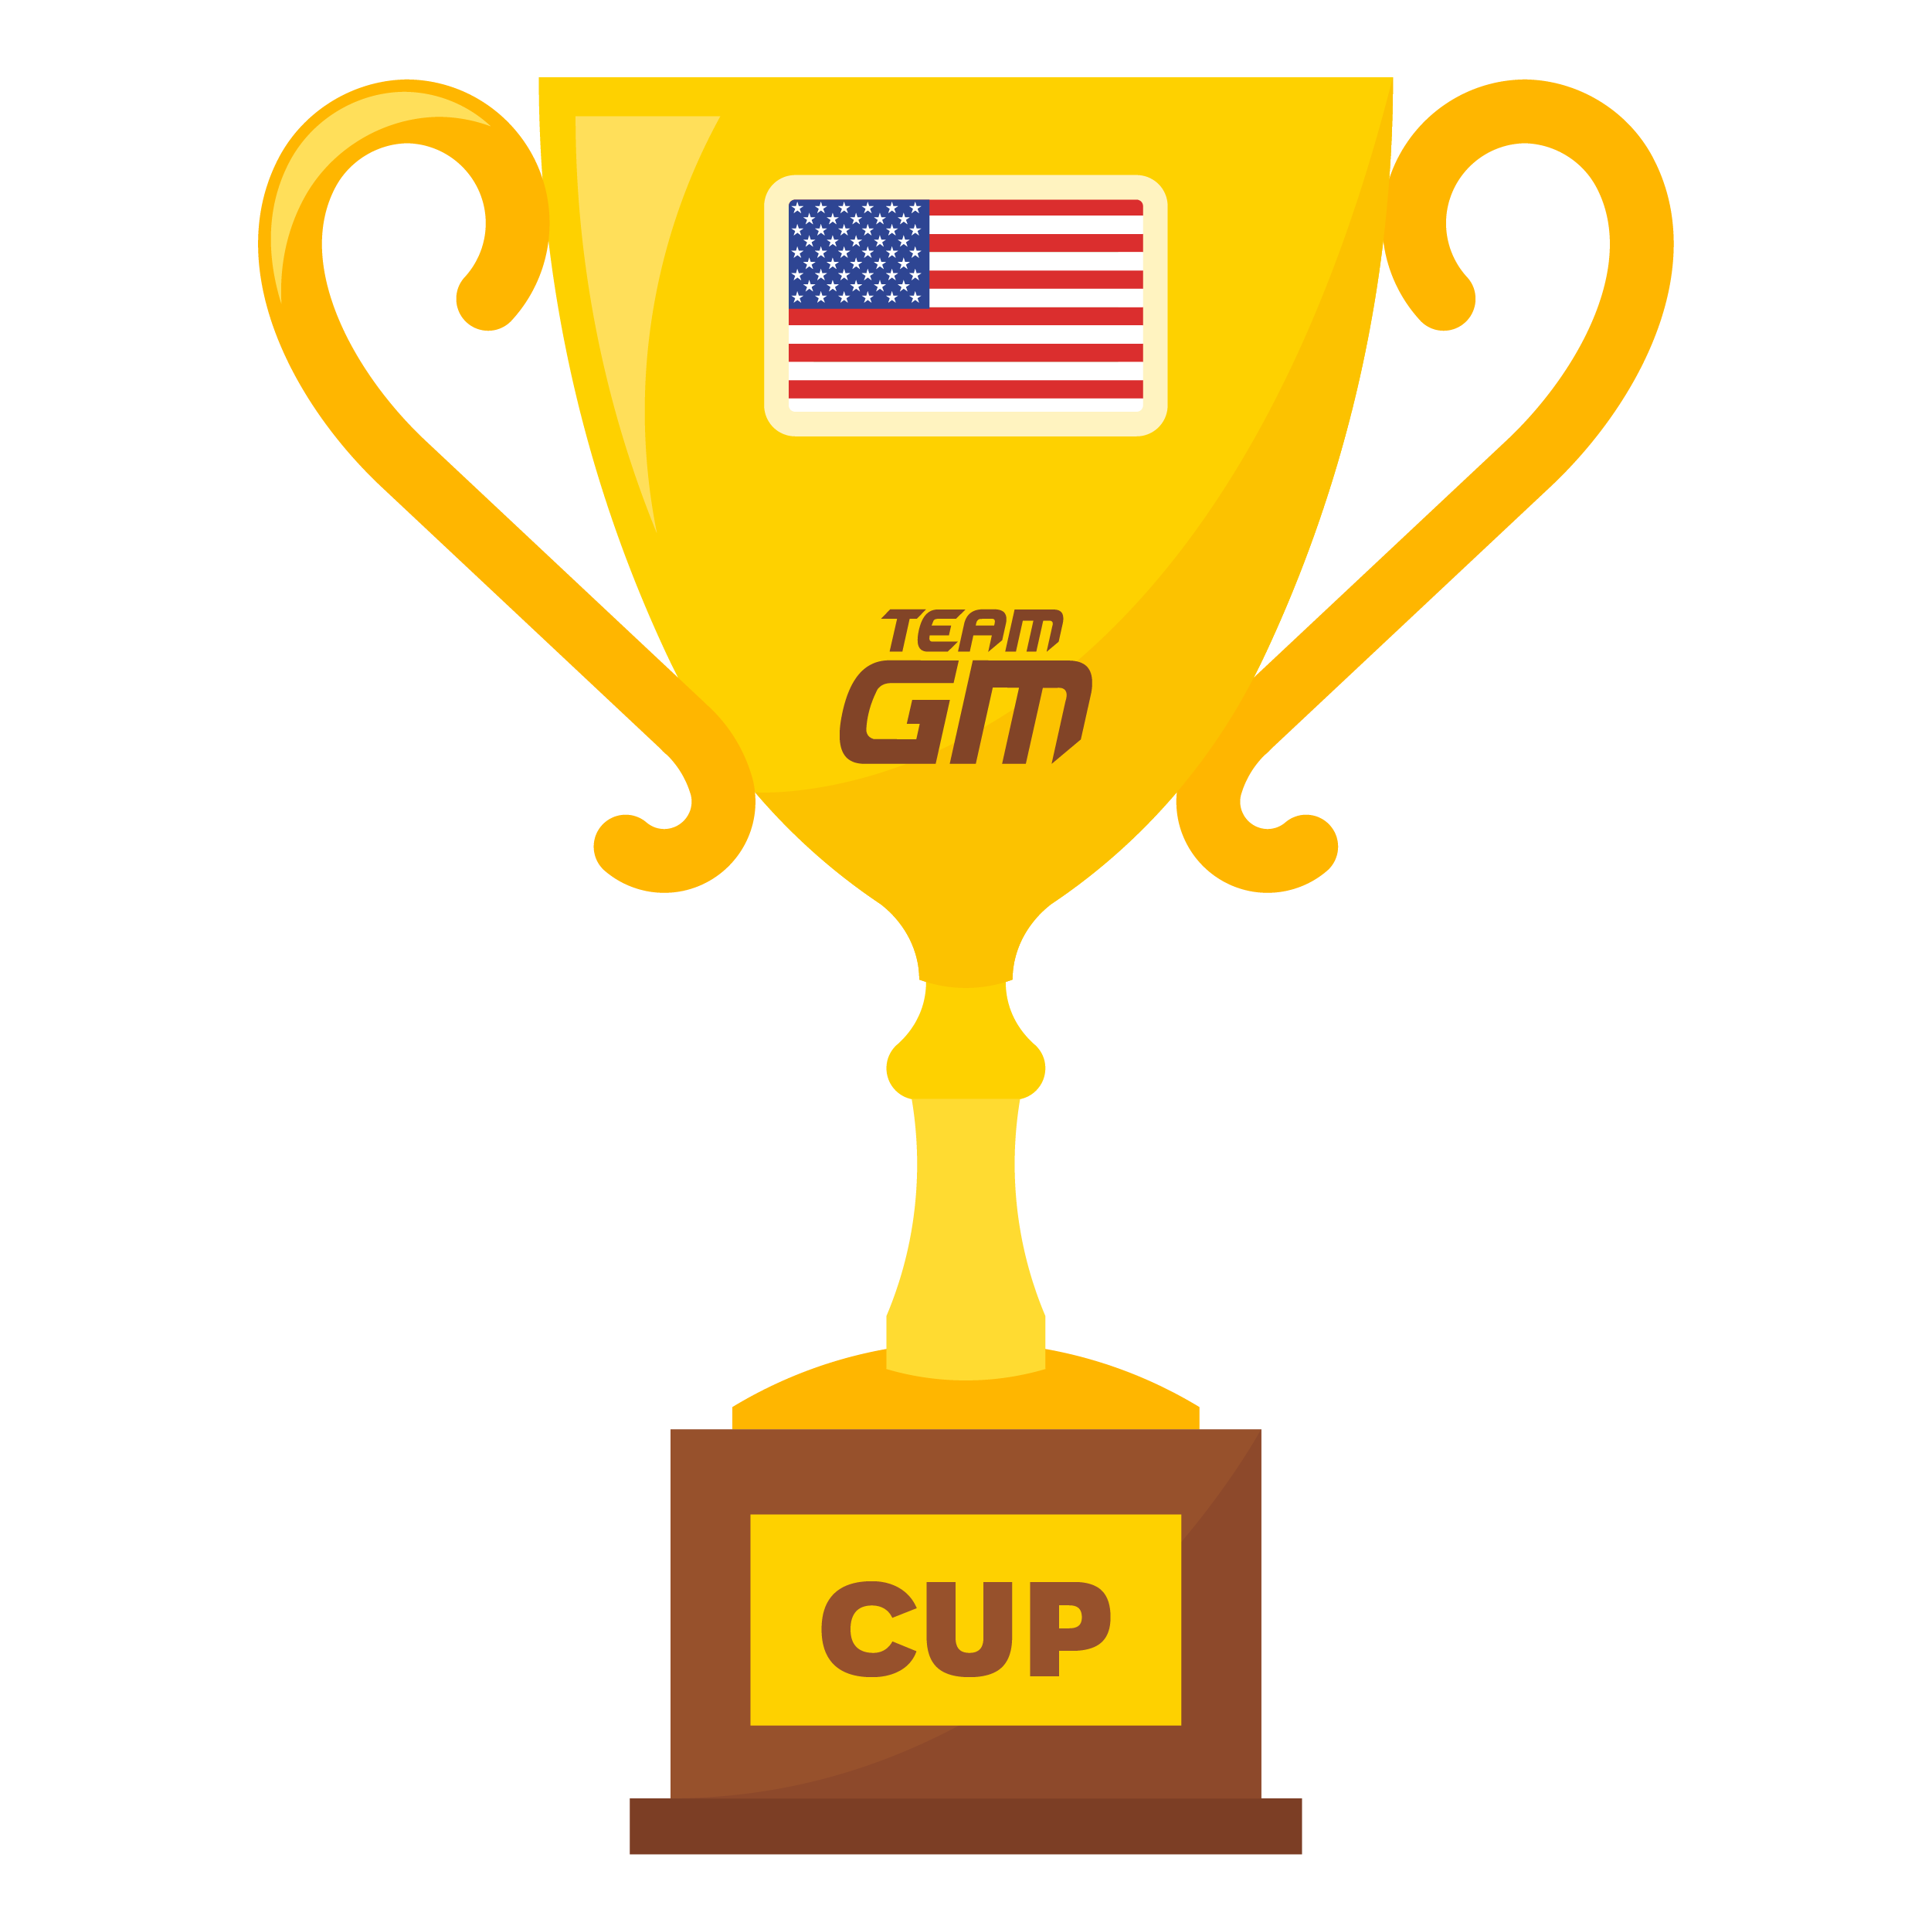 2ND - USA VOLLEYBALL CUP